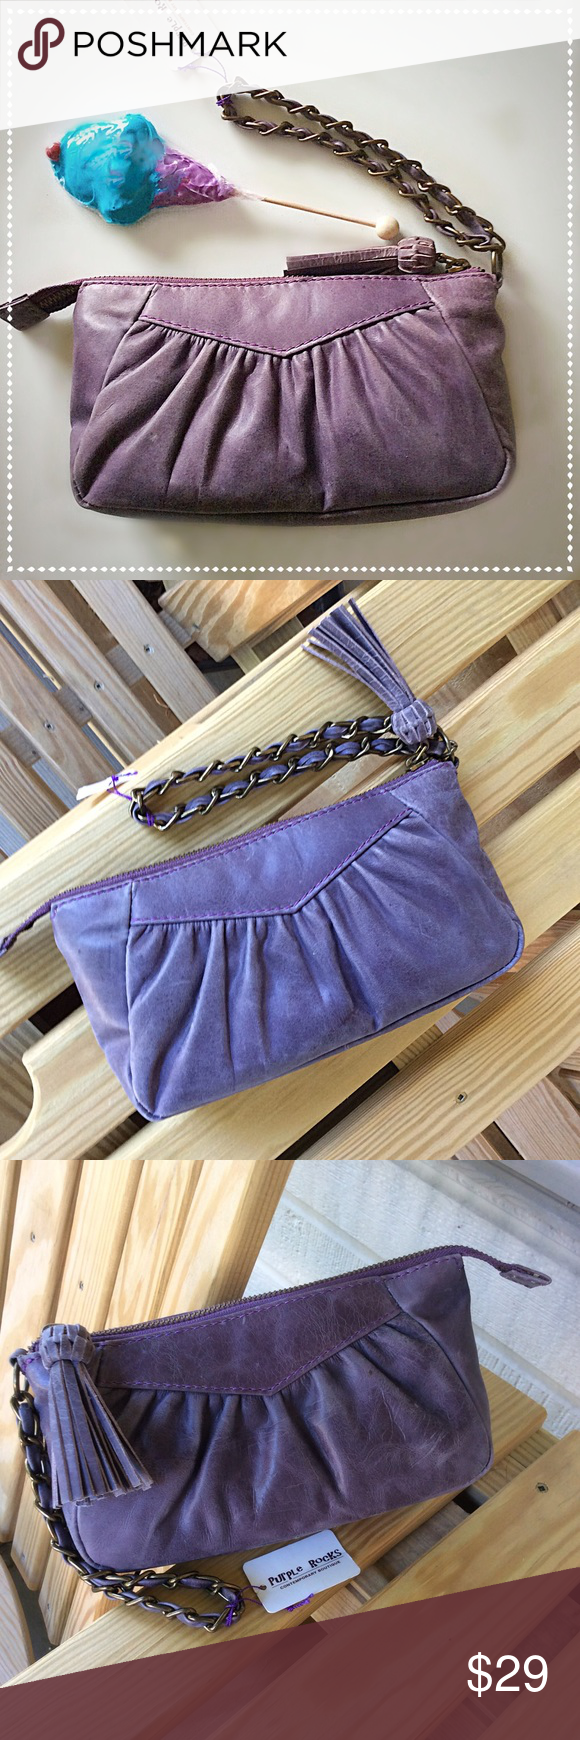 Distressed Purple Leather Clutch/Wristlet NWT ~ Some small flaws on leather as shown in photos.  Priced accordingly. Boutique Bags Clutches & Wristlets